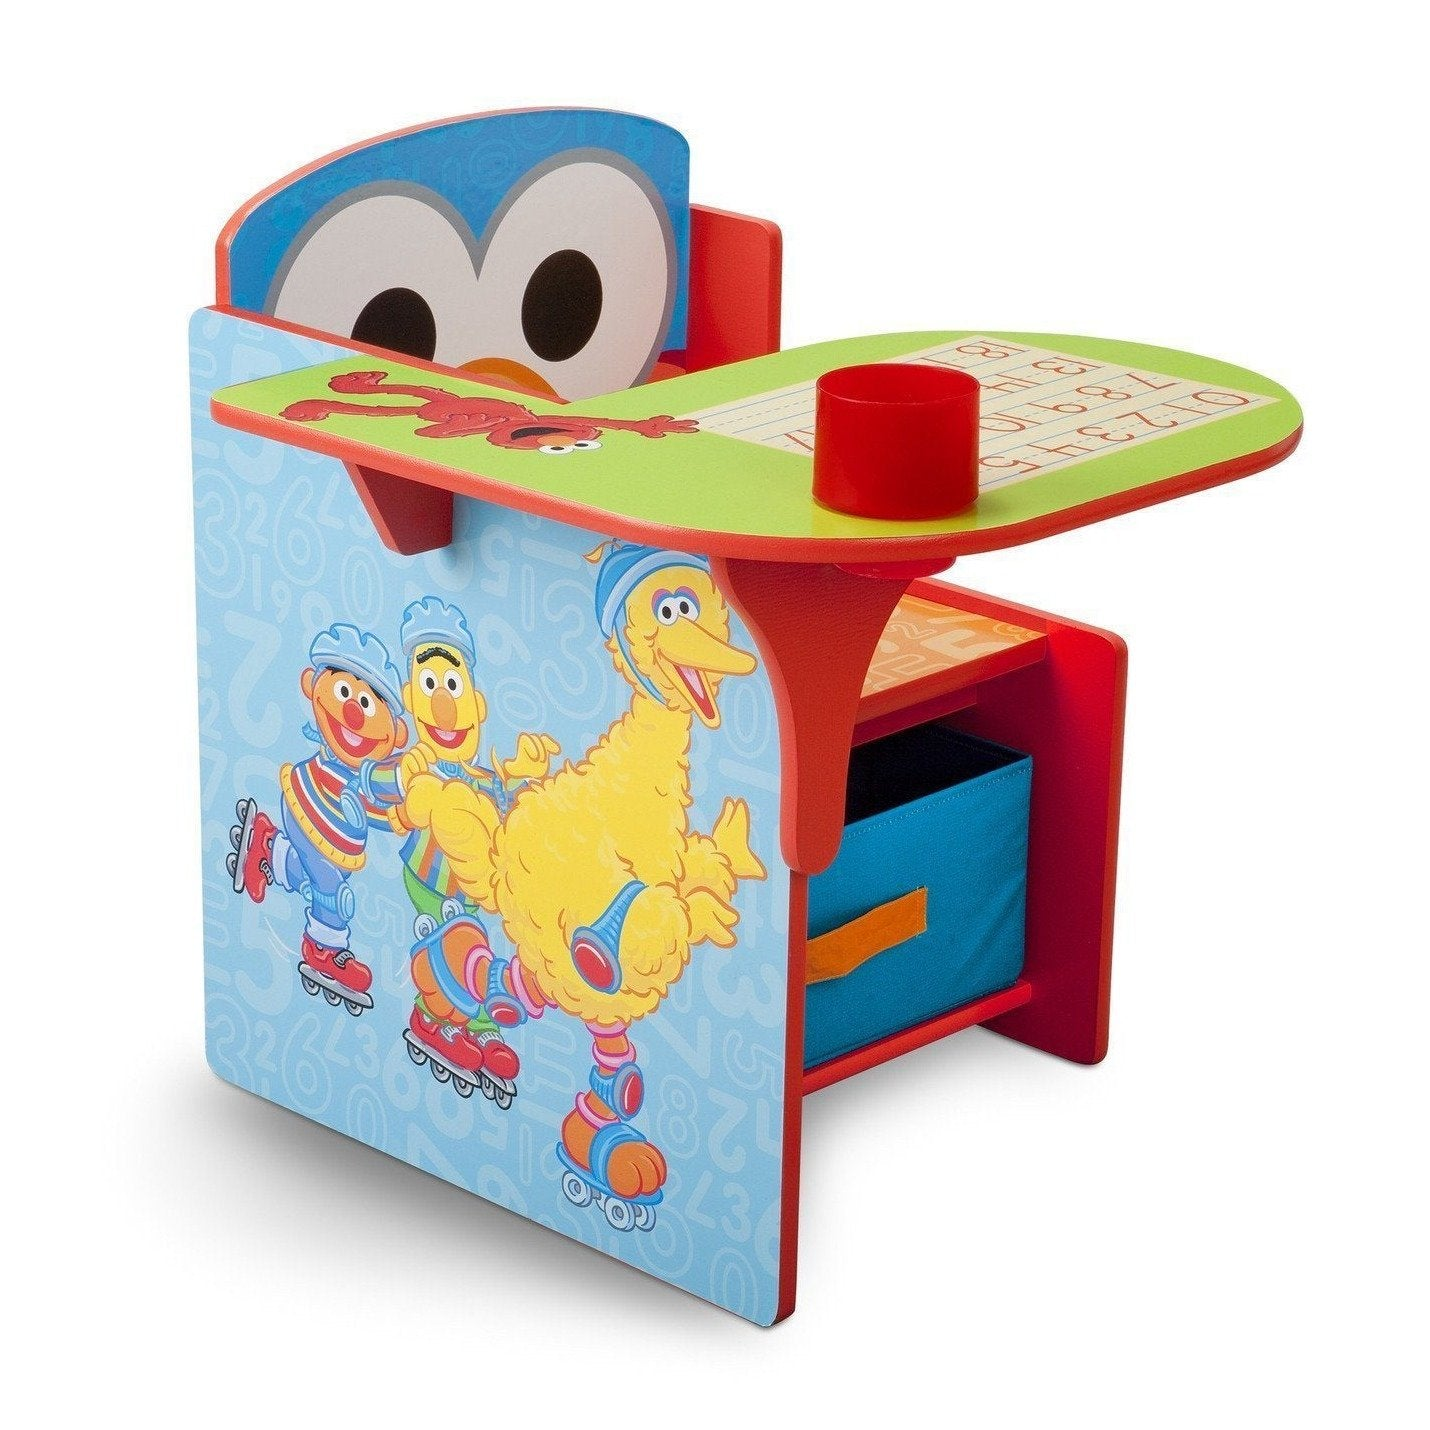 Delta Children Style-1 (999) Sesame Street Chair Desk with Storage Bin Right Side View a1a